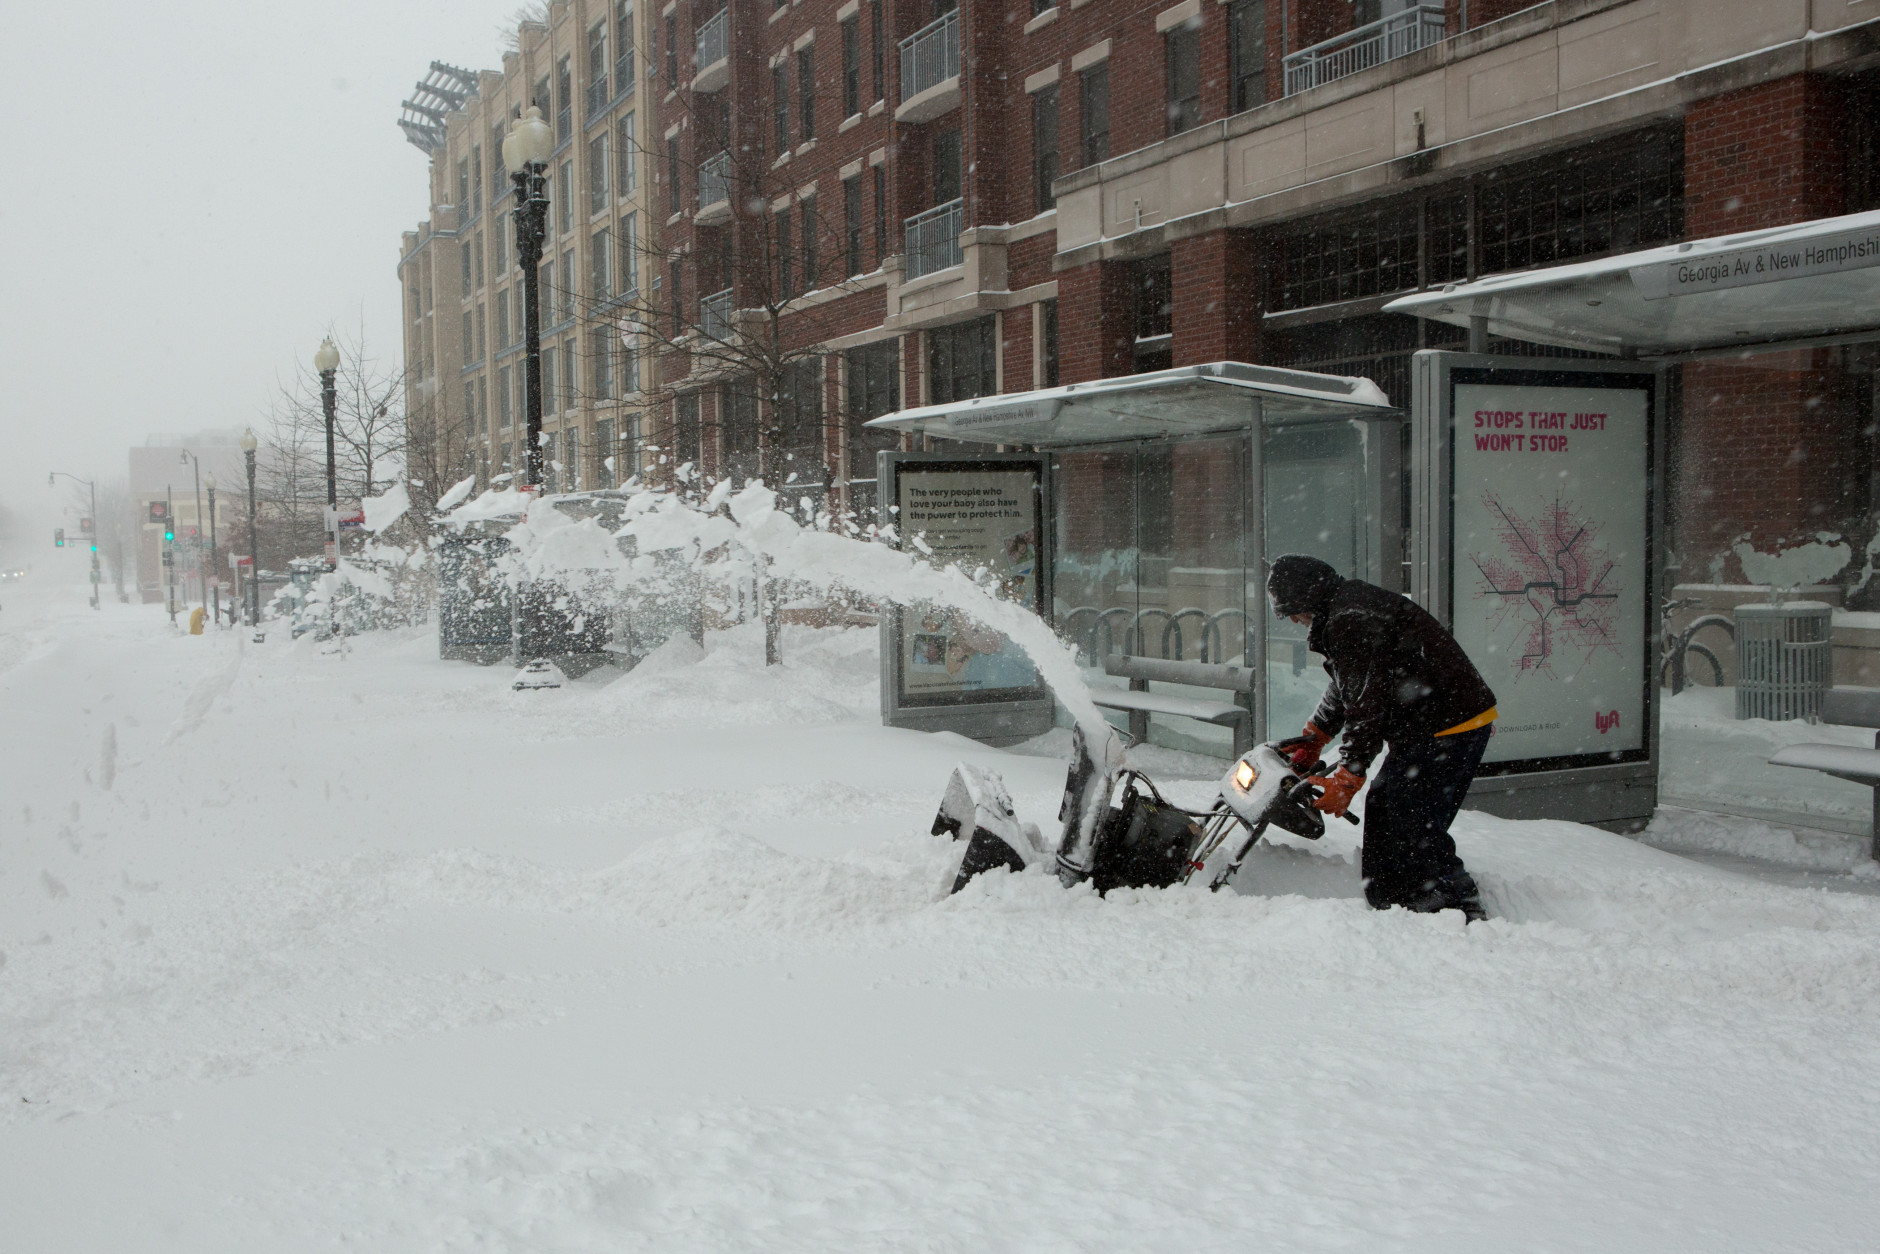 A man uses a snow blower to clear a sidewalk in front of the shuttered Georgia Ave.-Petworth metro station on January 23, 2016 in Washington, DC. Over a foot of snow has already fallen in the city in the past 24 hours, in what experts say could be a record-breaking storm.  (Photo by Allison Shelley/Getty Images)